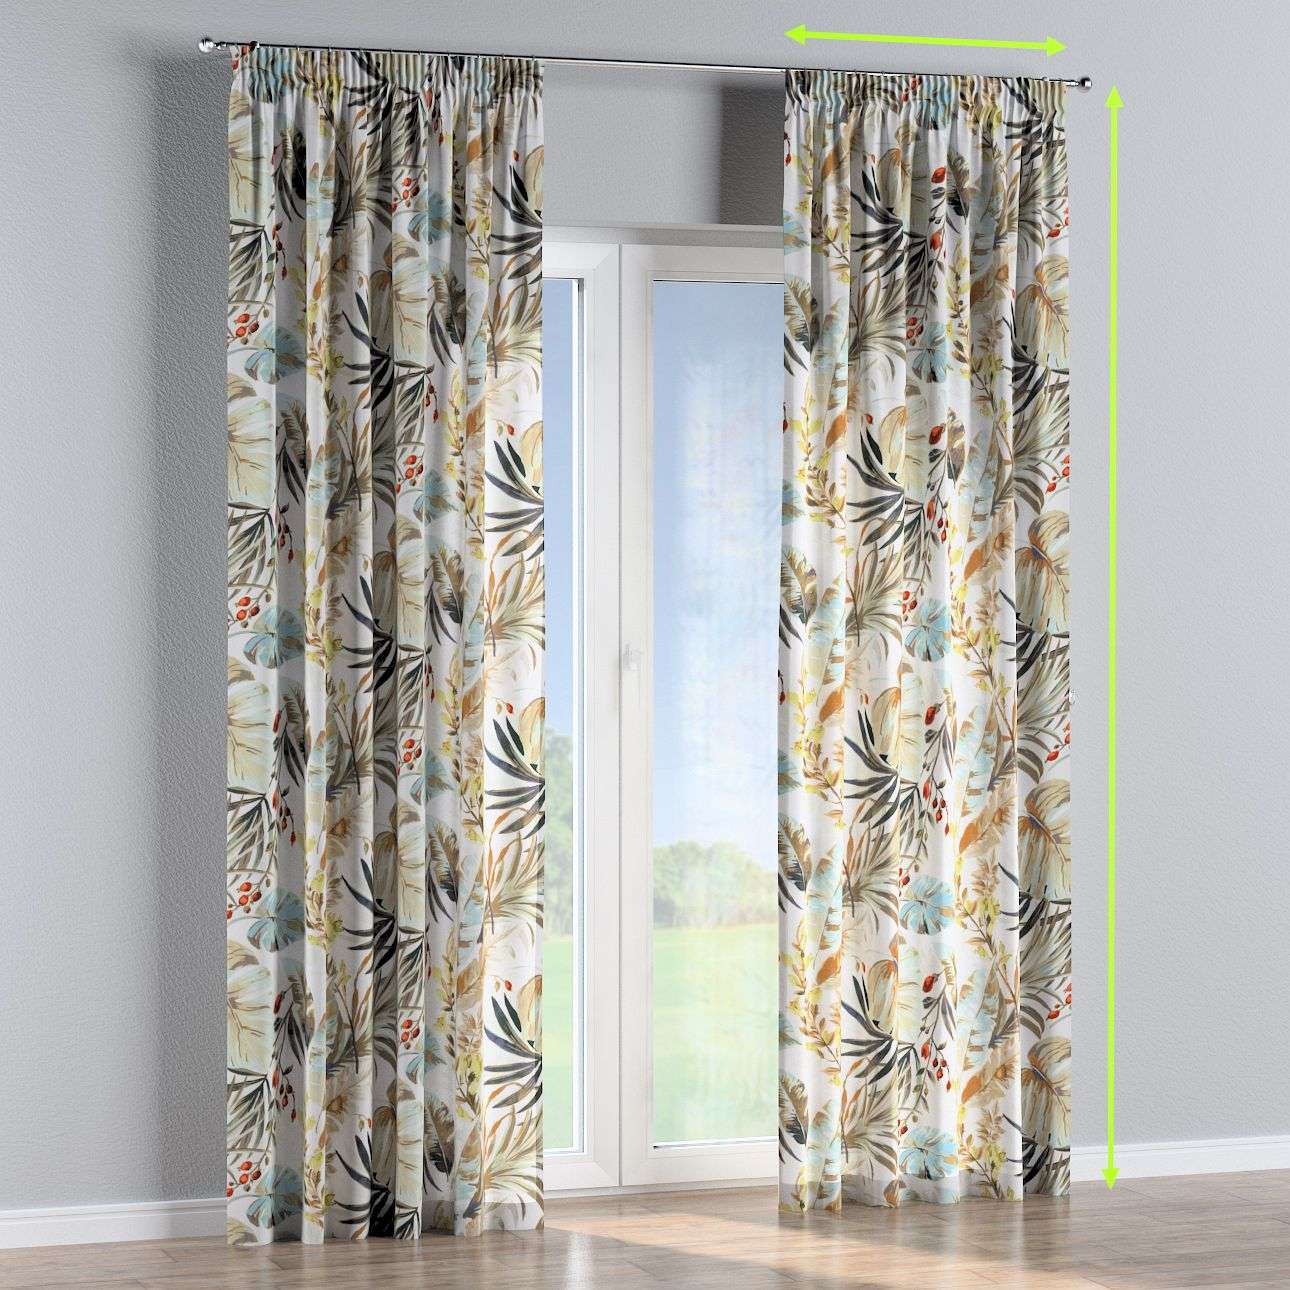 Pencil pleat lined curtains in collection Urban Jungle, fabric: 141-42